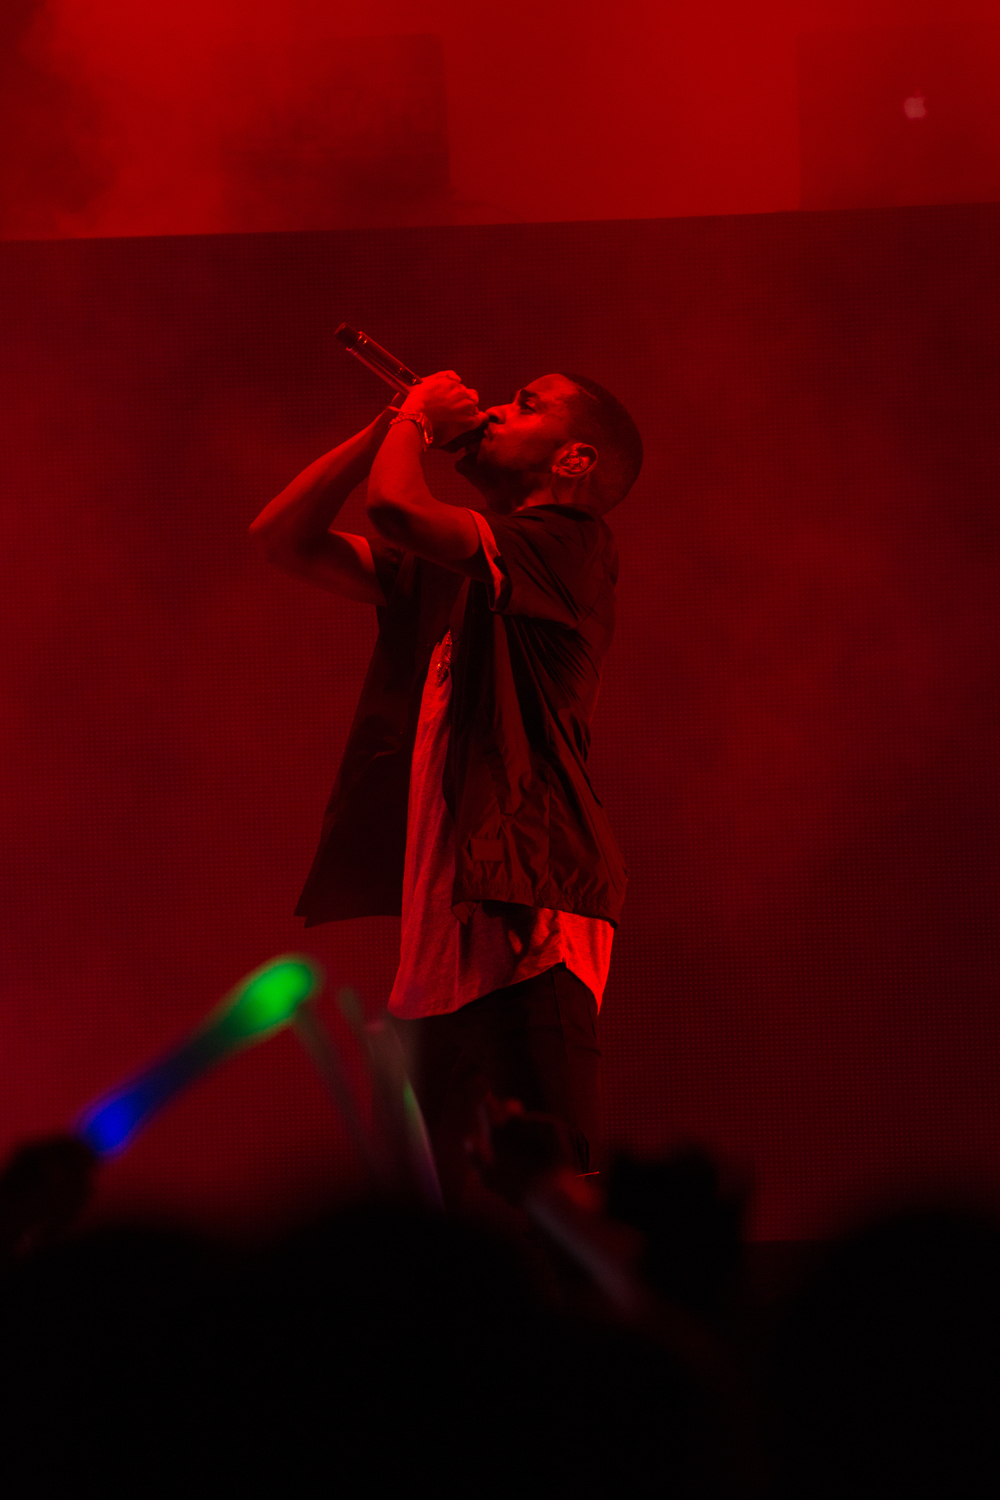 Singer Big Sean performs at Party In The Park at The University of Tampa in Florida. Photograph by Alex Jackson.